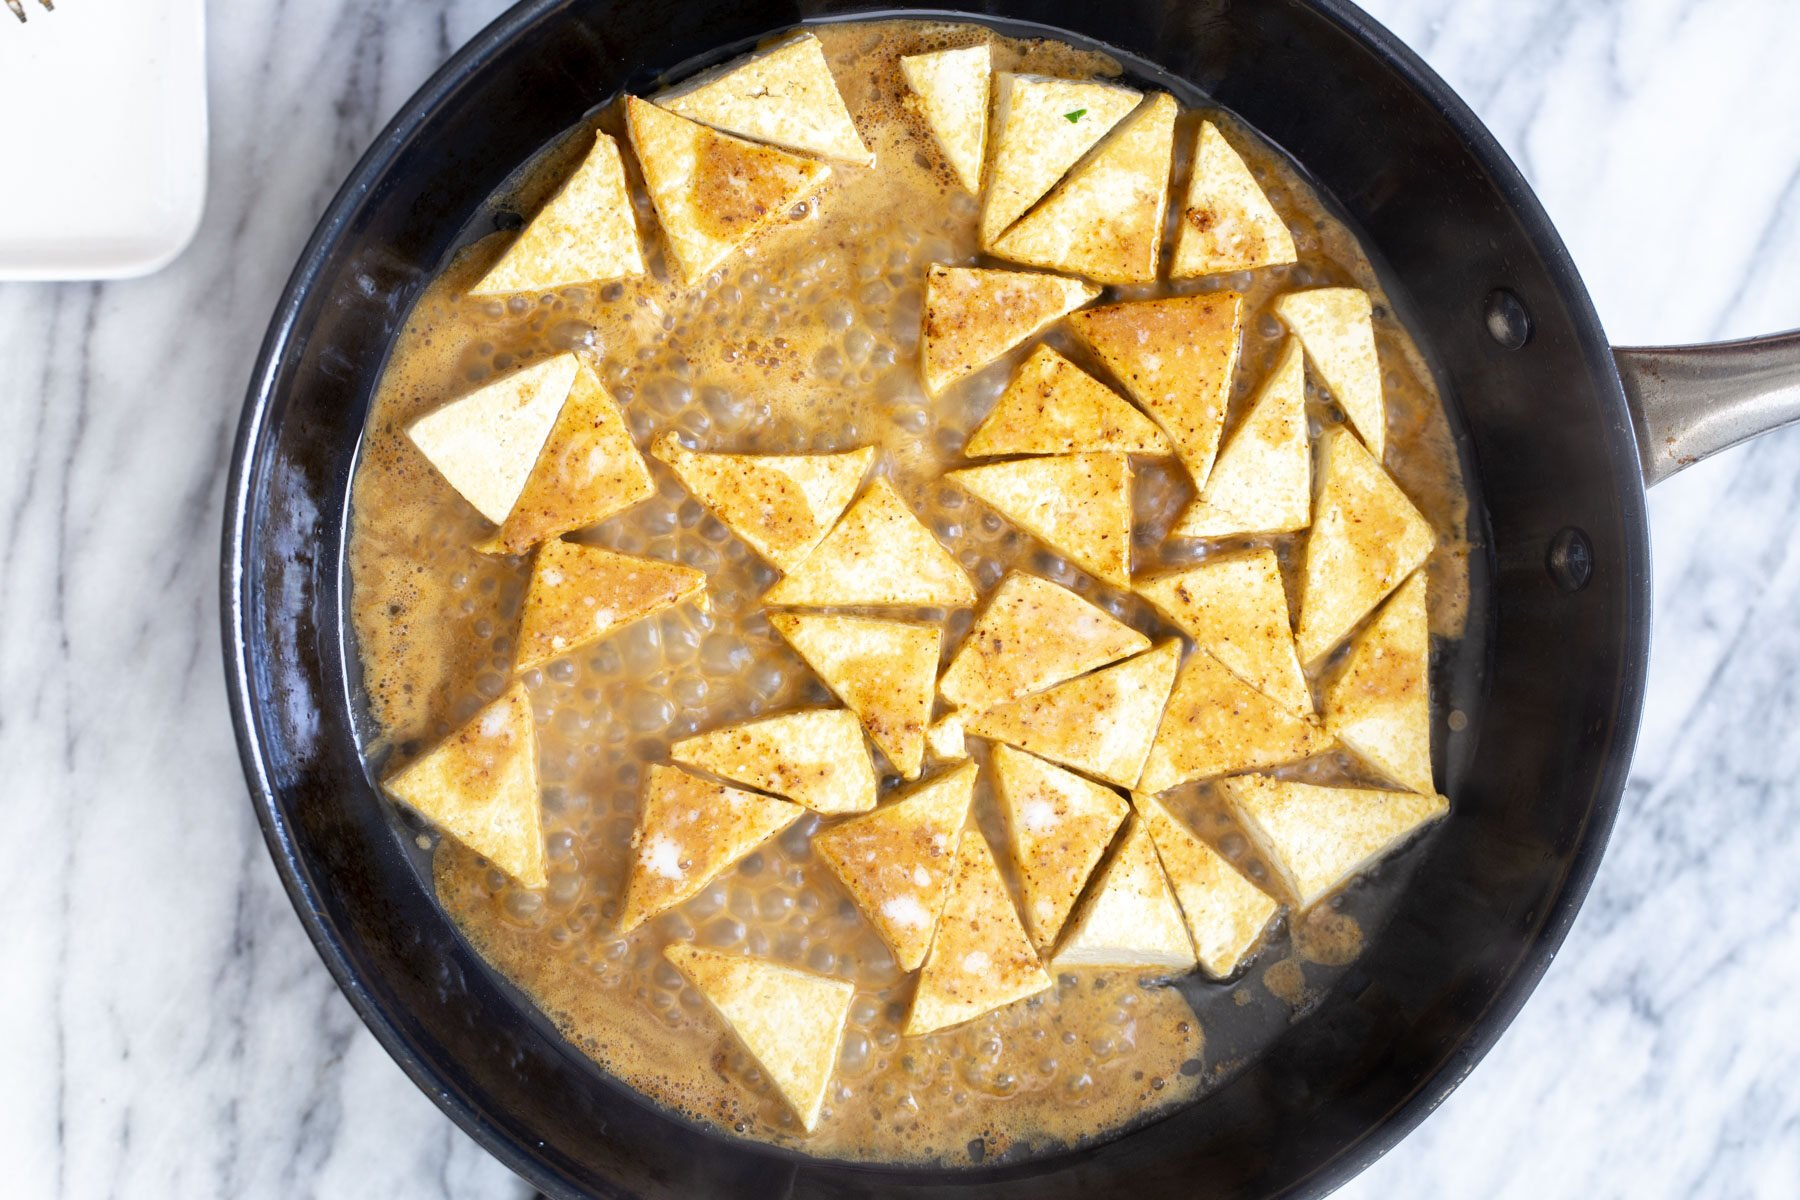 curry sauce being added to saucepan to coat pan-fried tofu